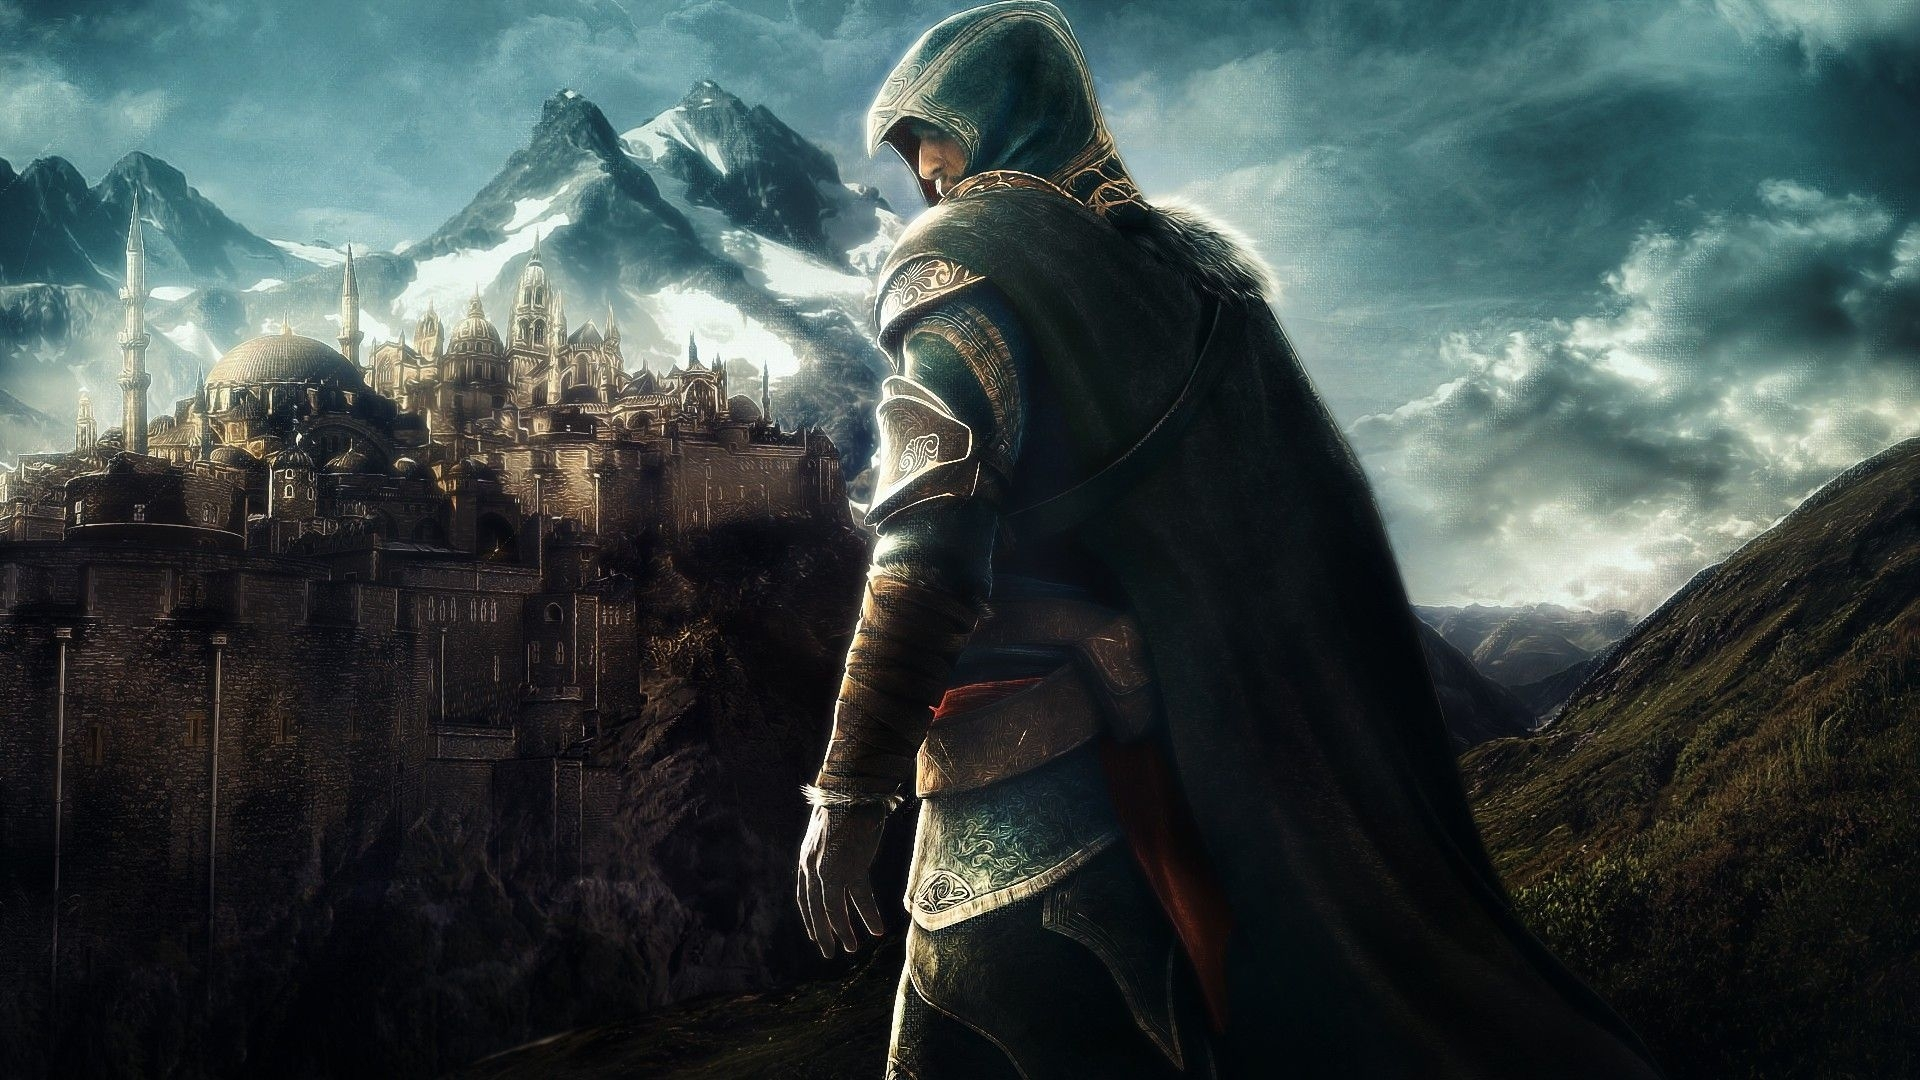 game wallpapers hd 1080p group (88+)